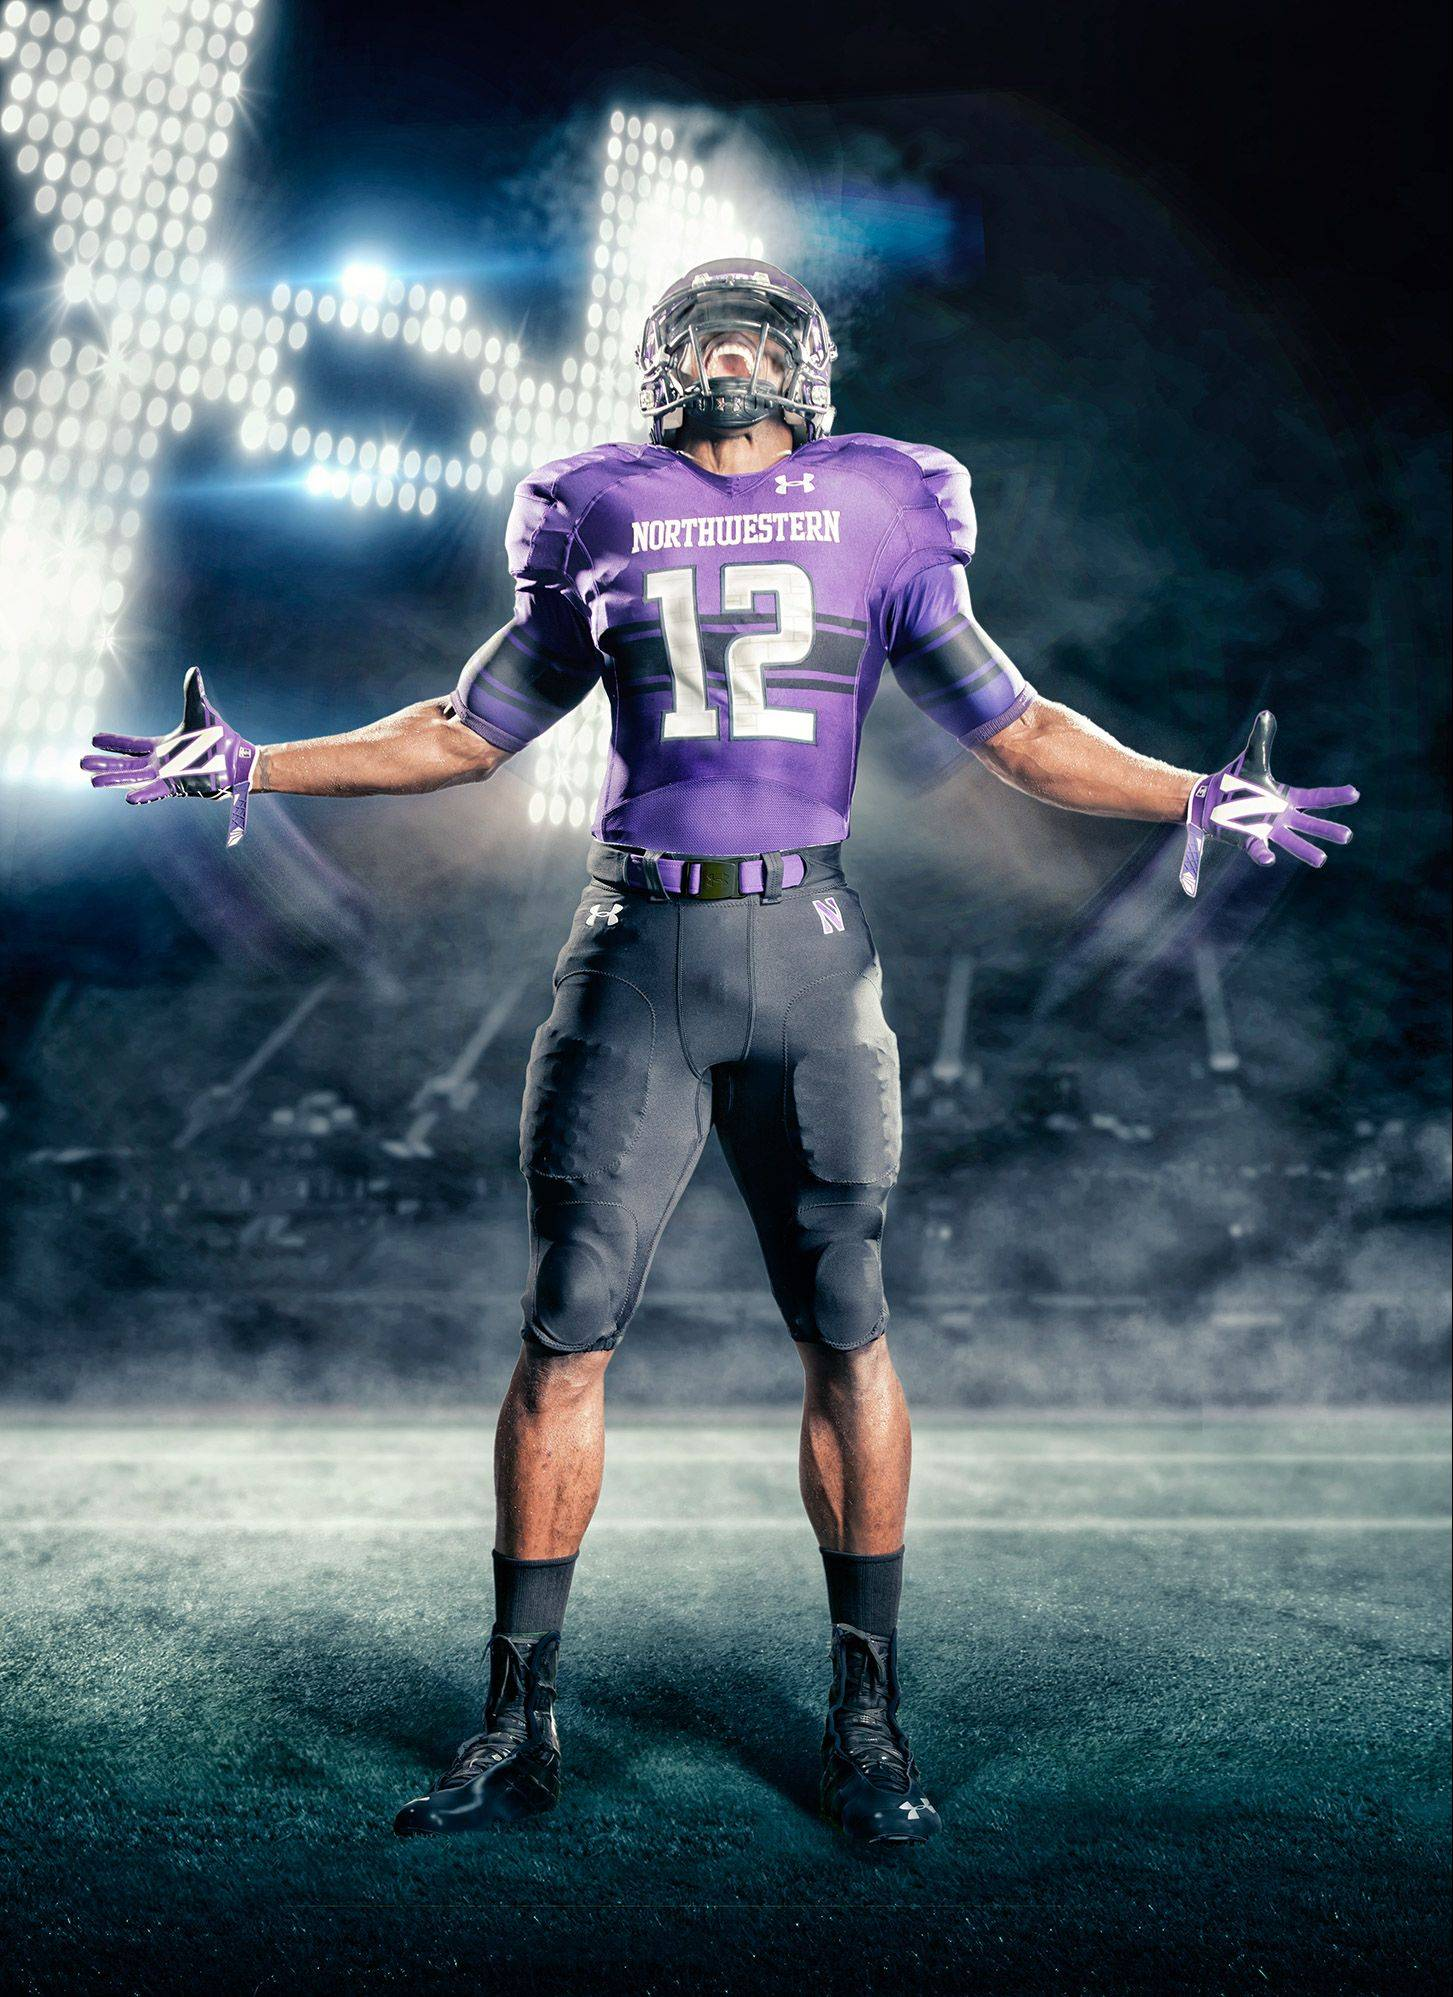 Northwestern players will wear new uniforms this season.